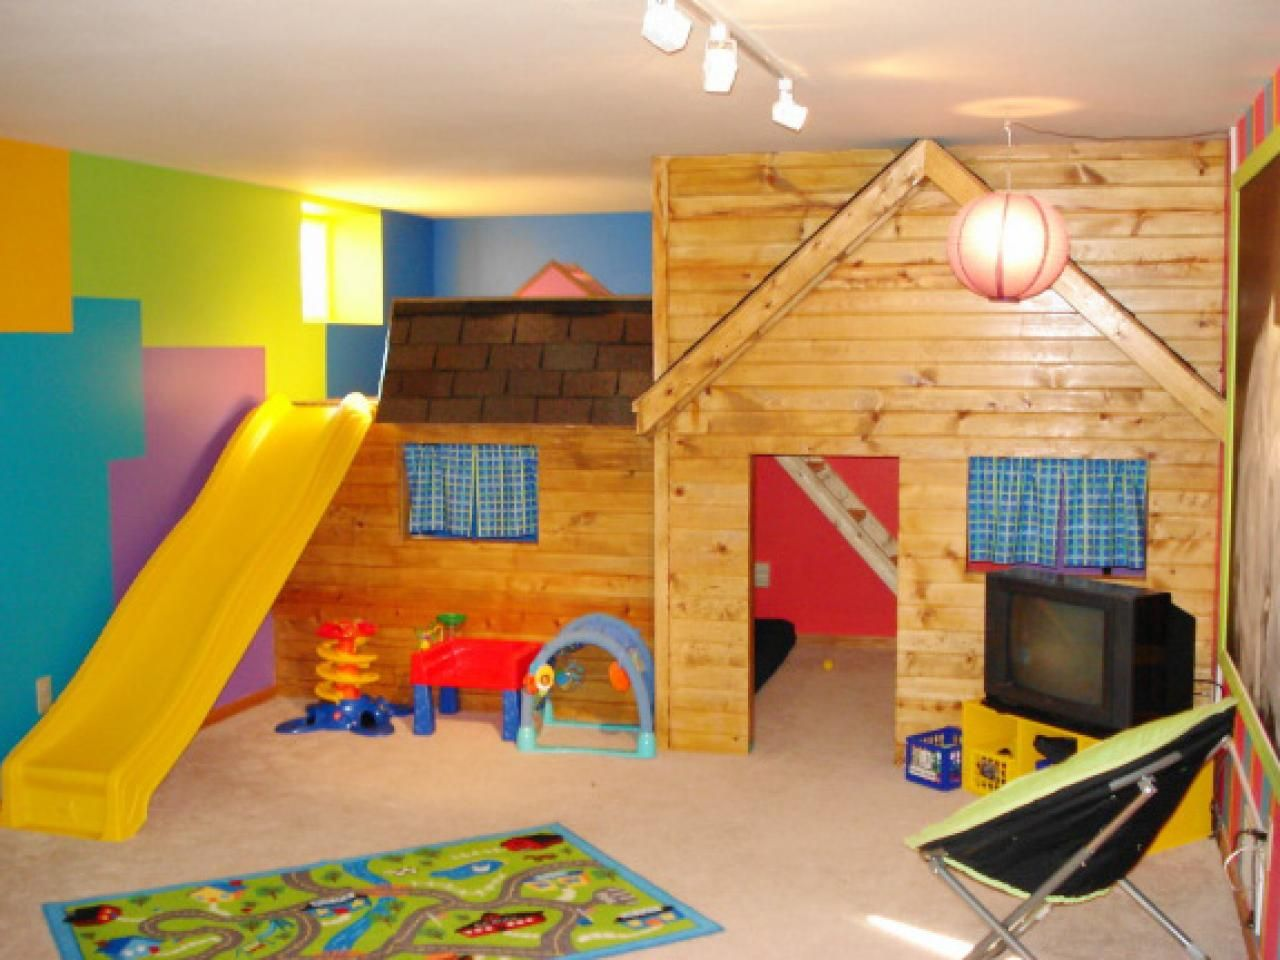 Boys Playroom Ideas Boys playroom ideas Playrooms and Hgtv